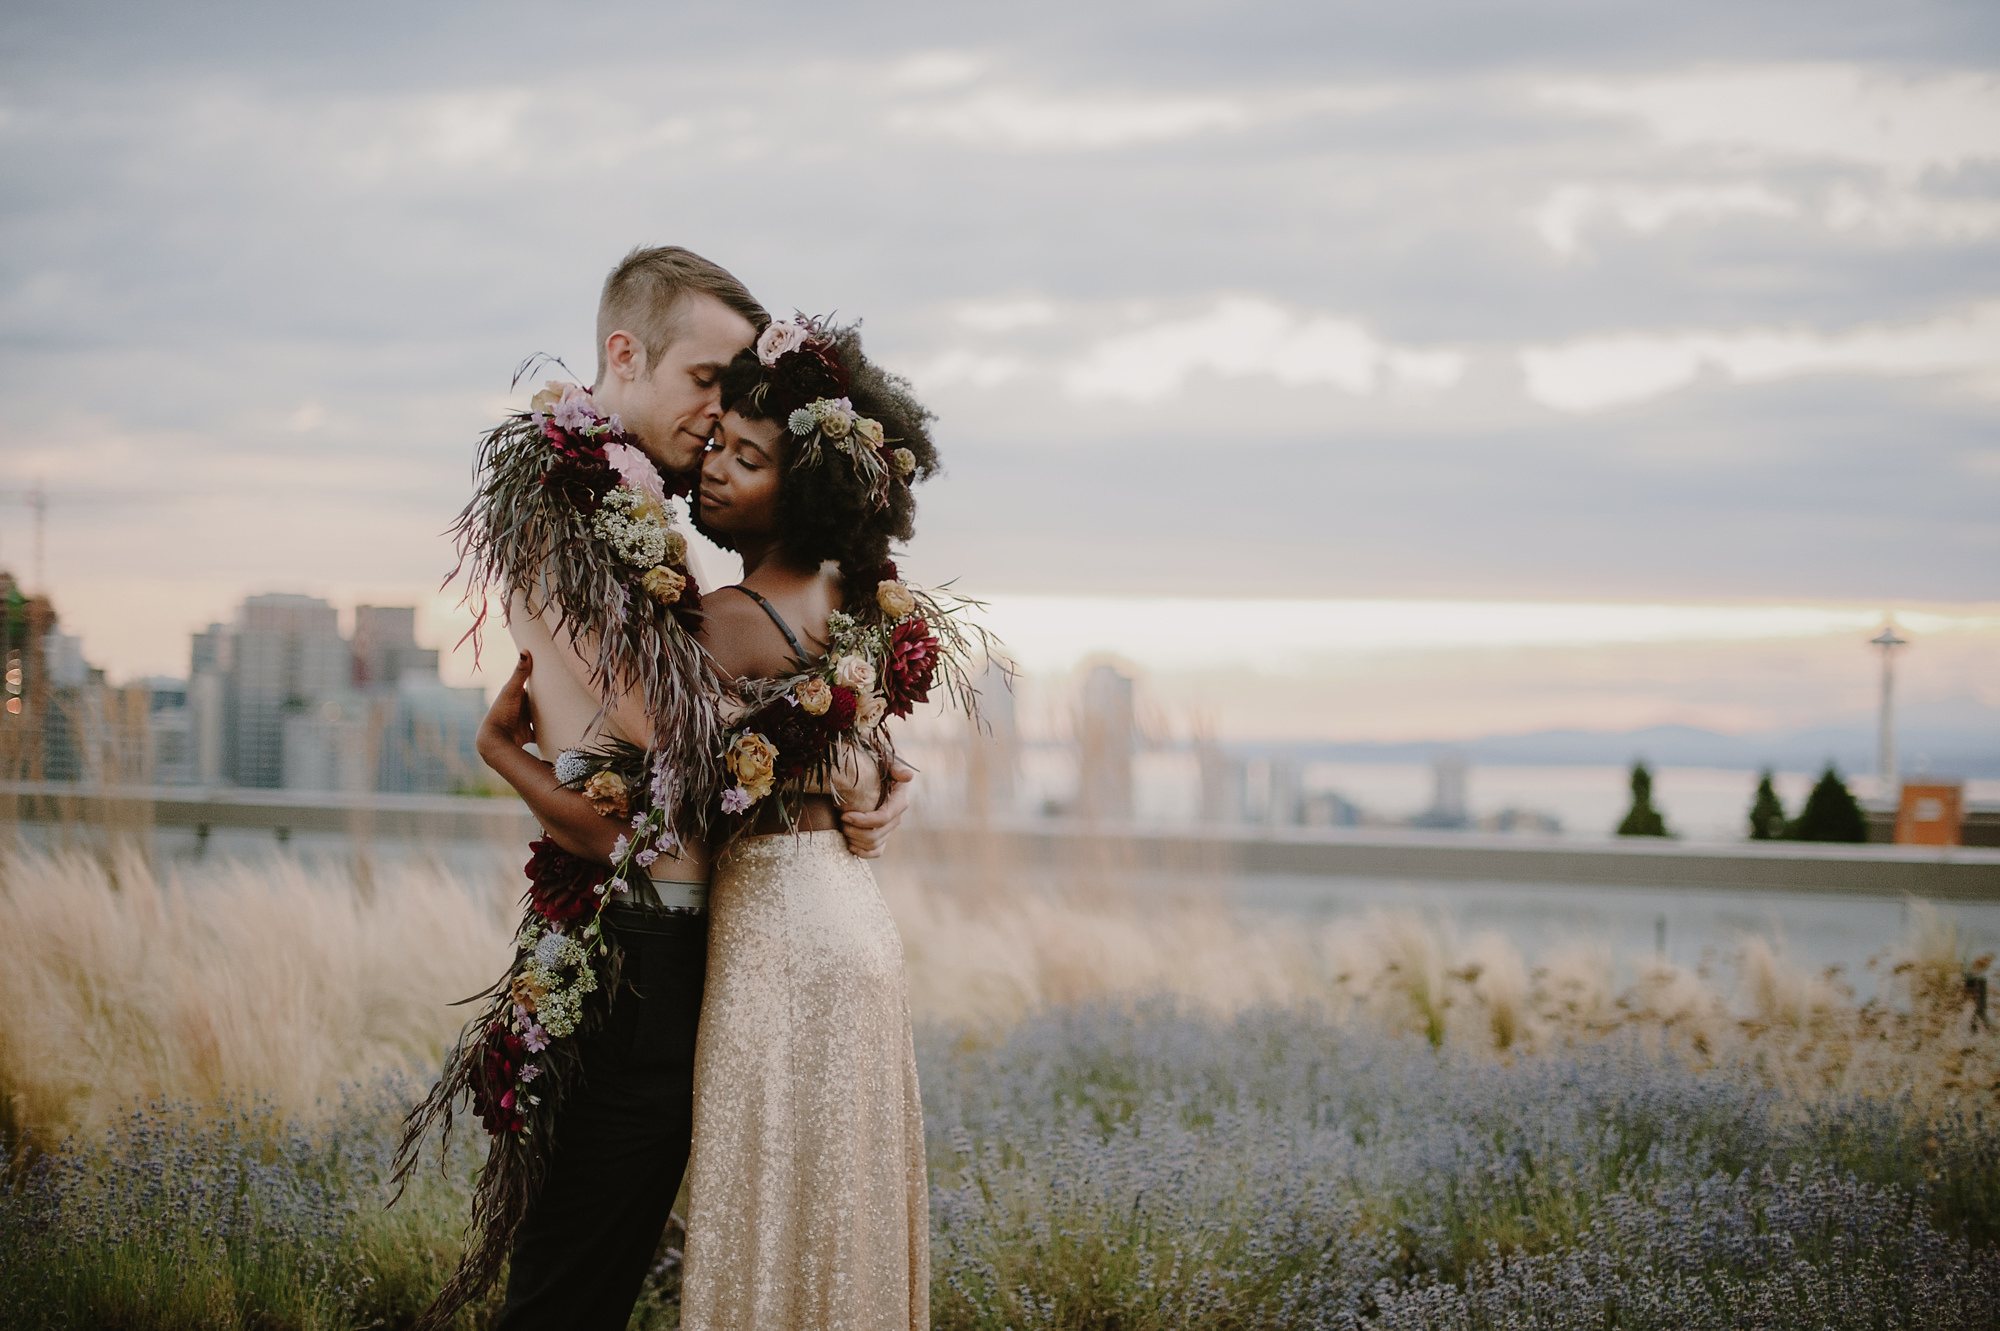 Bride wearing golden skirt and bra top with long rustic floral garland - photo by Kristen Marie Parker - Seattle